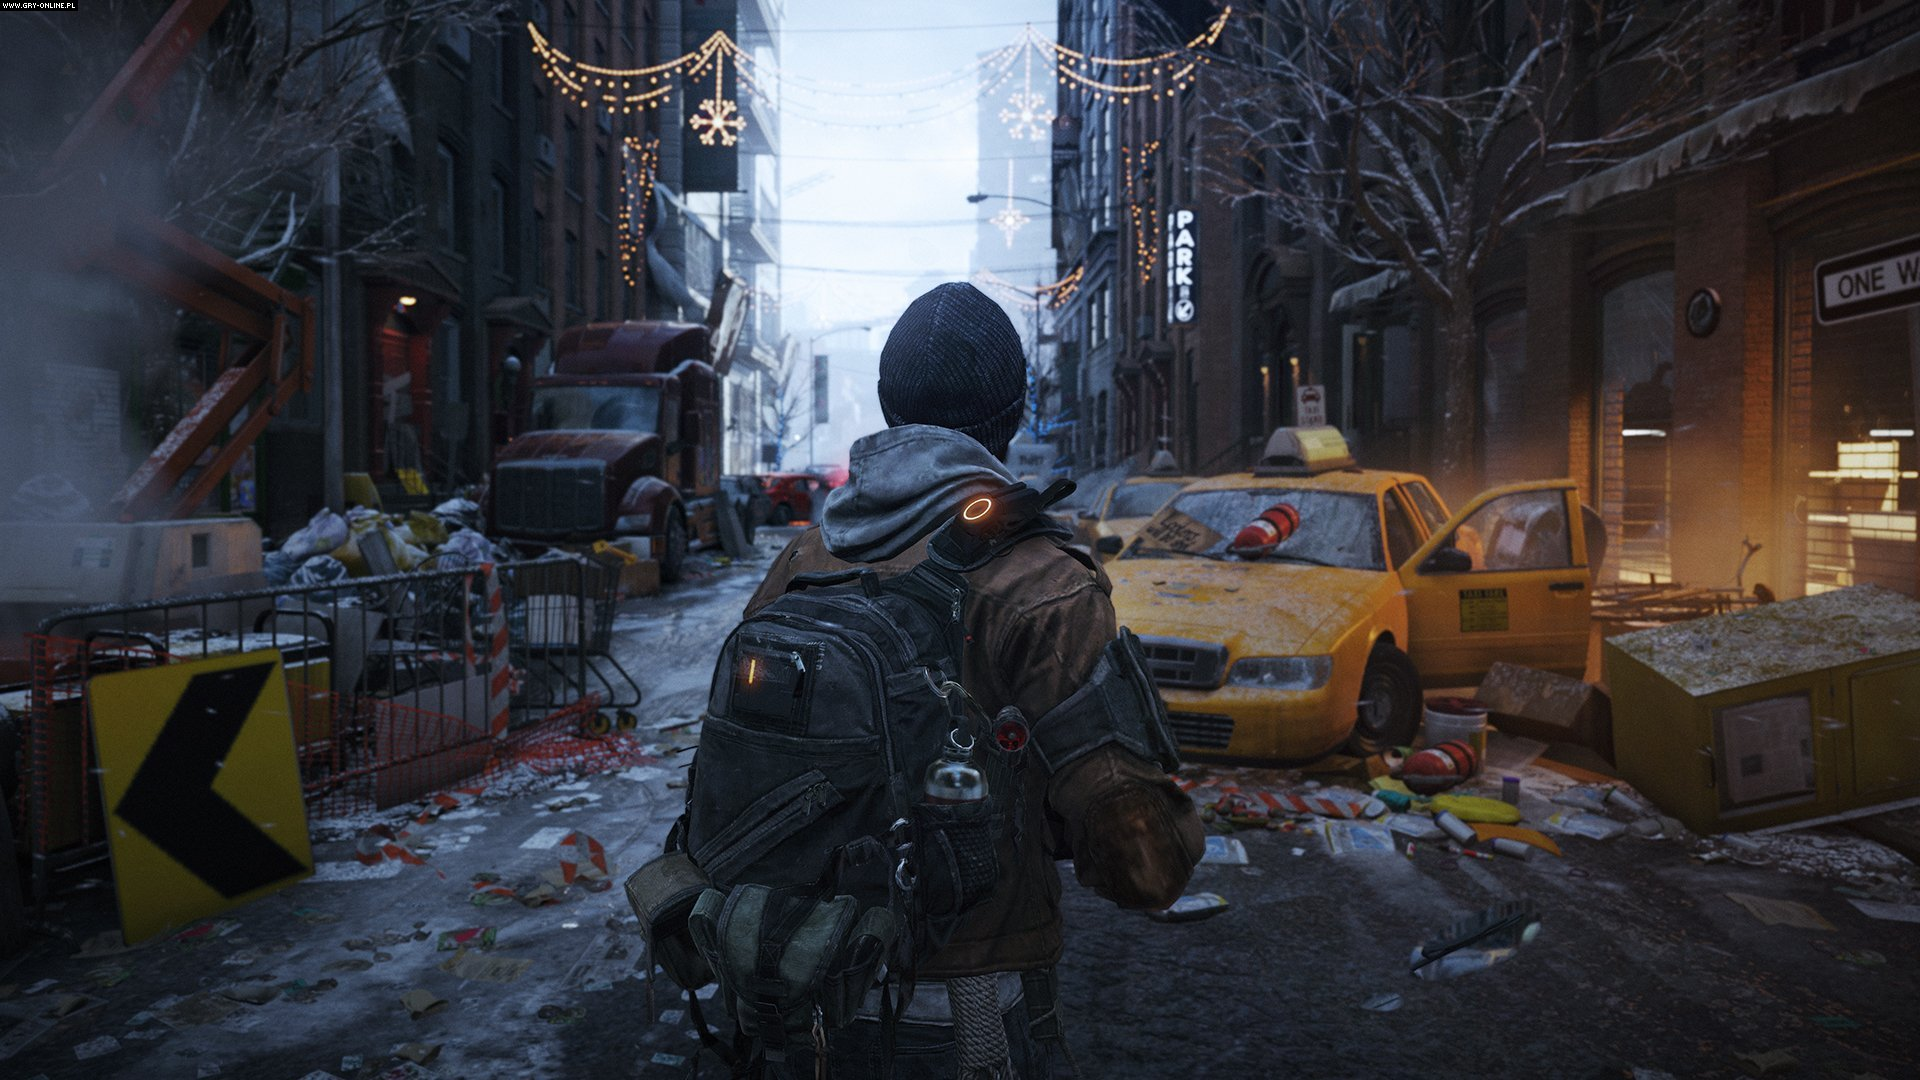 Tom Clancy's The Division PC, PS4, XONE Games Image 49/51, Massive Entertainment, Ubisoft